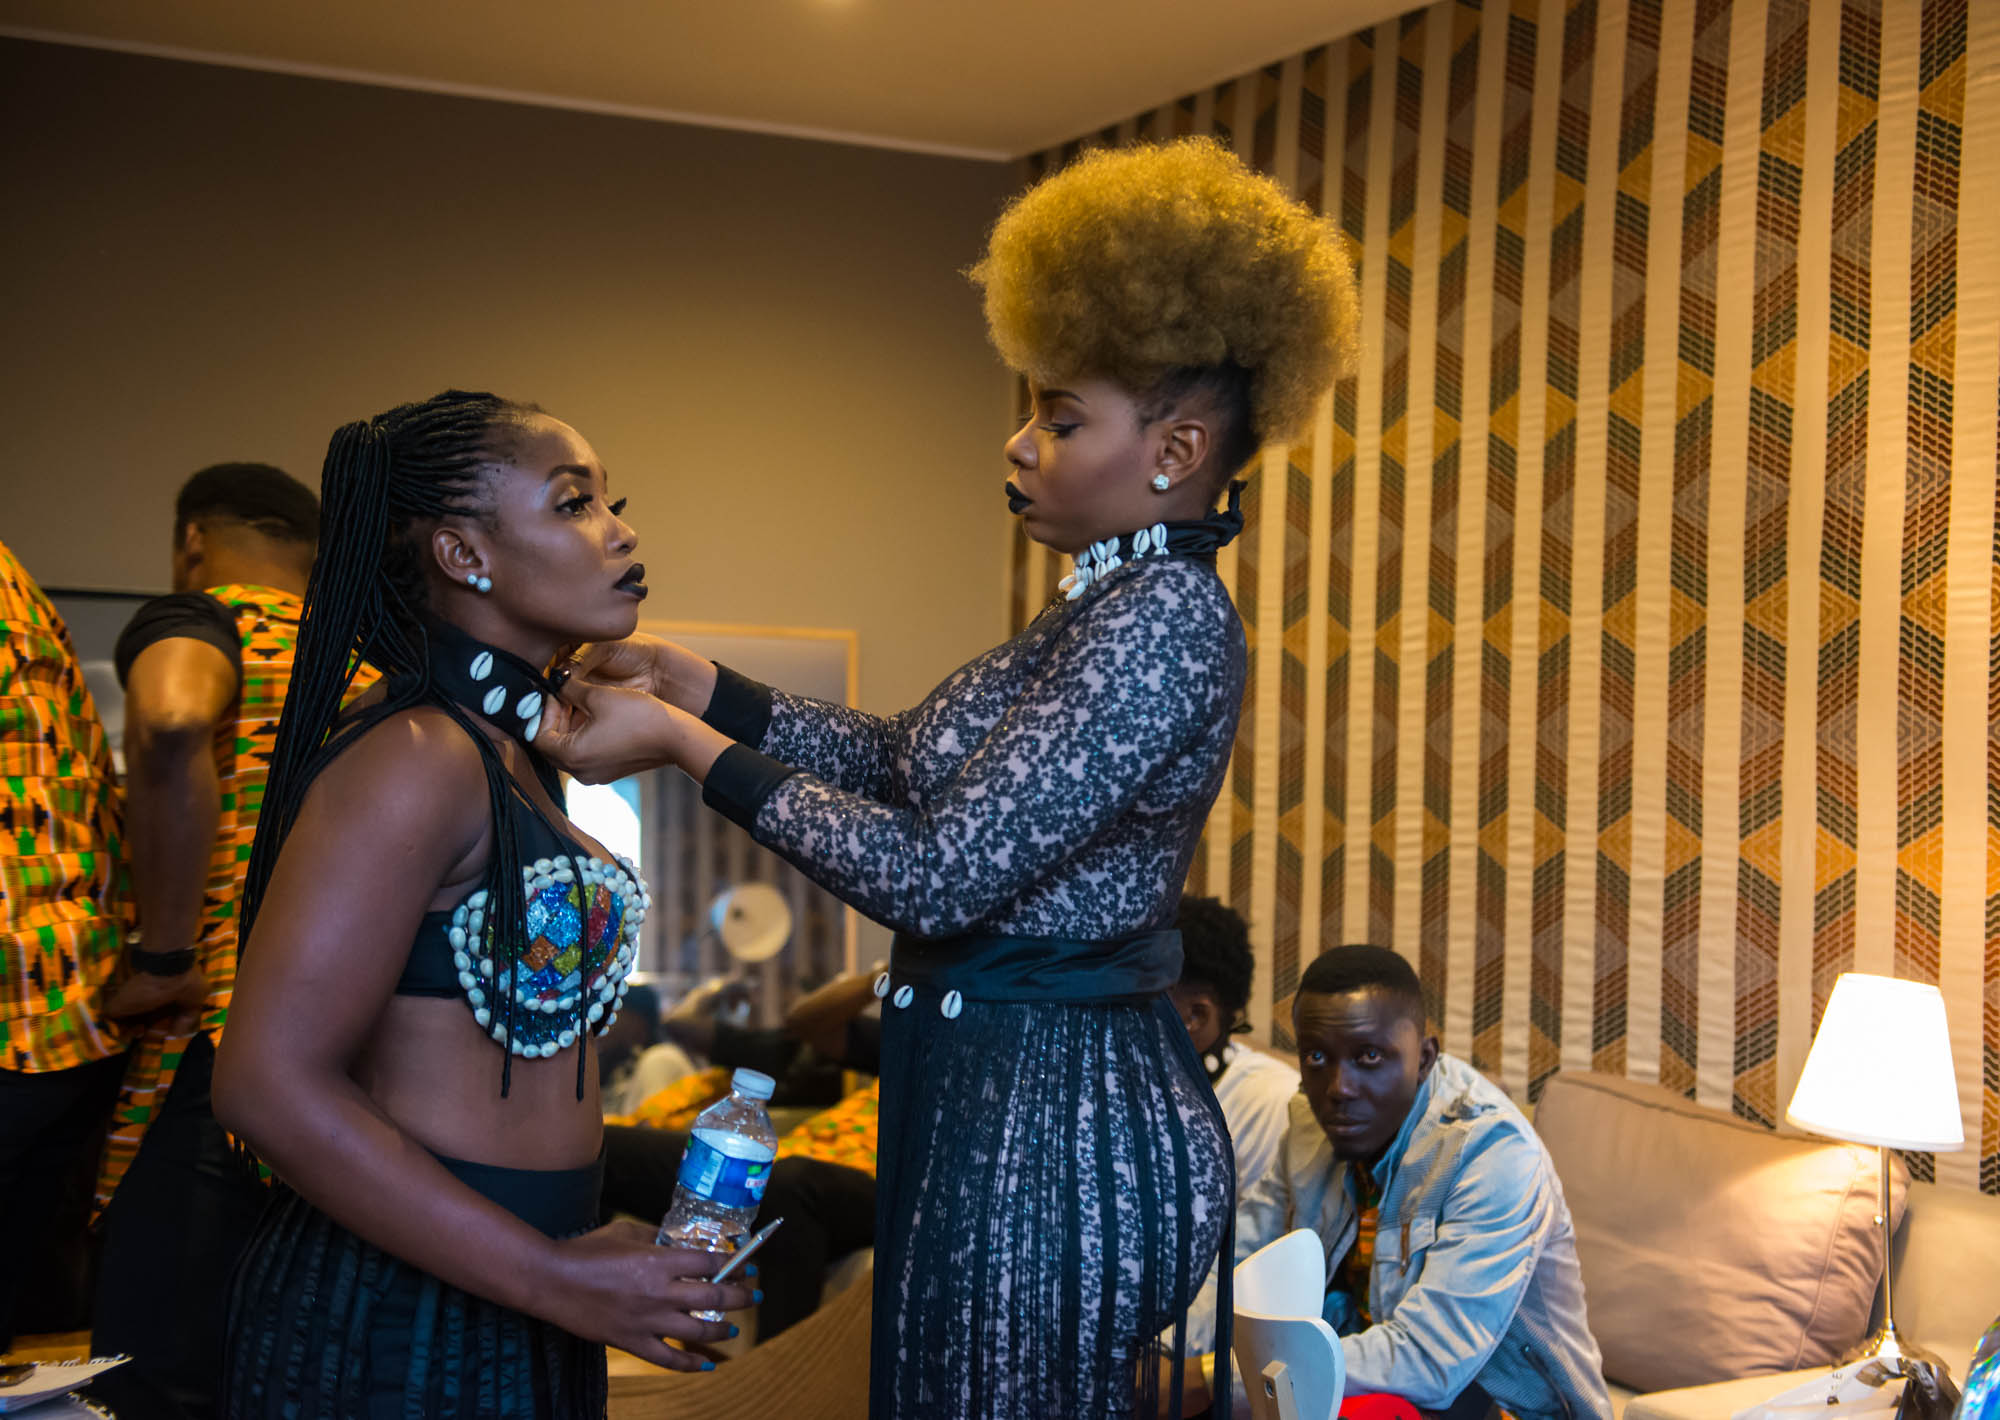 Paris, France. 7th April 2017. Yemi Alade helping one of her dancers before her performance at Le Trianon, Paris. Photographed by Michael Tubes